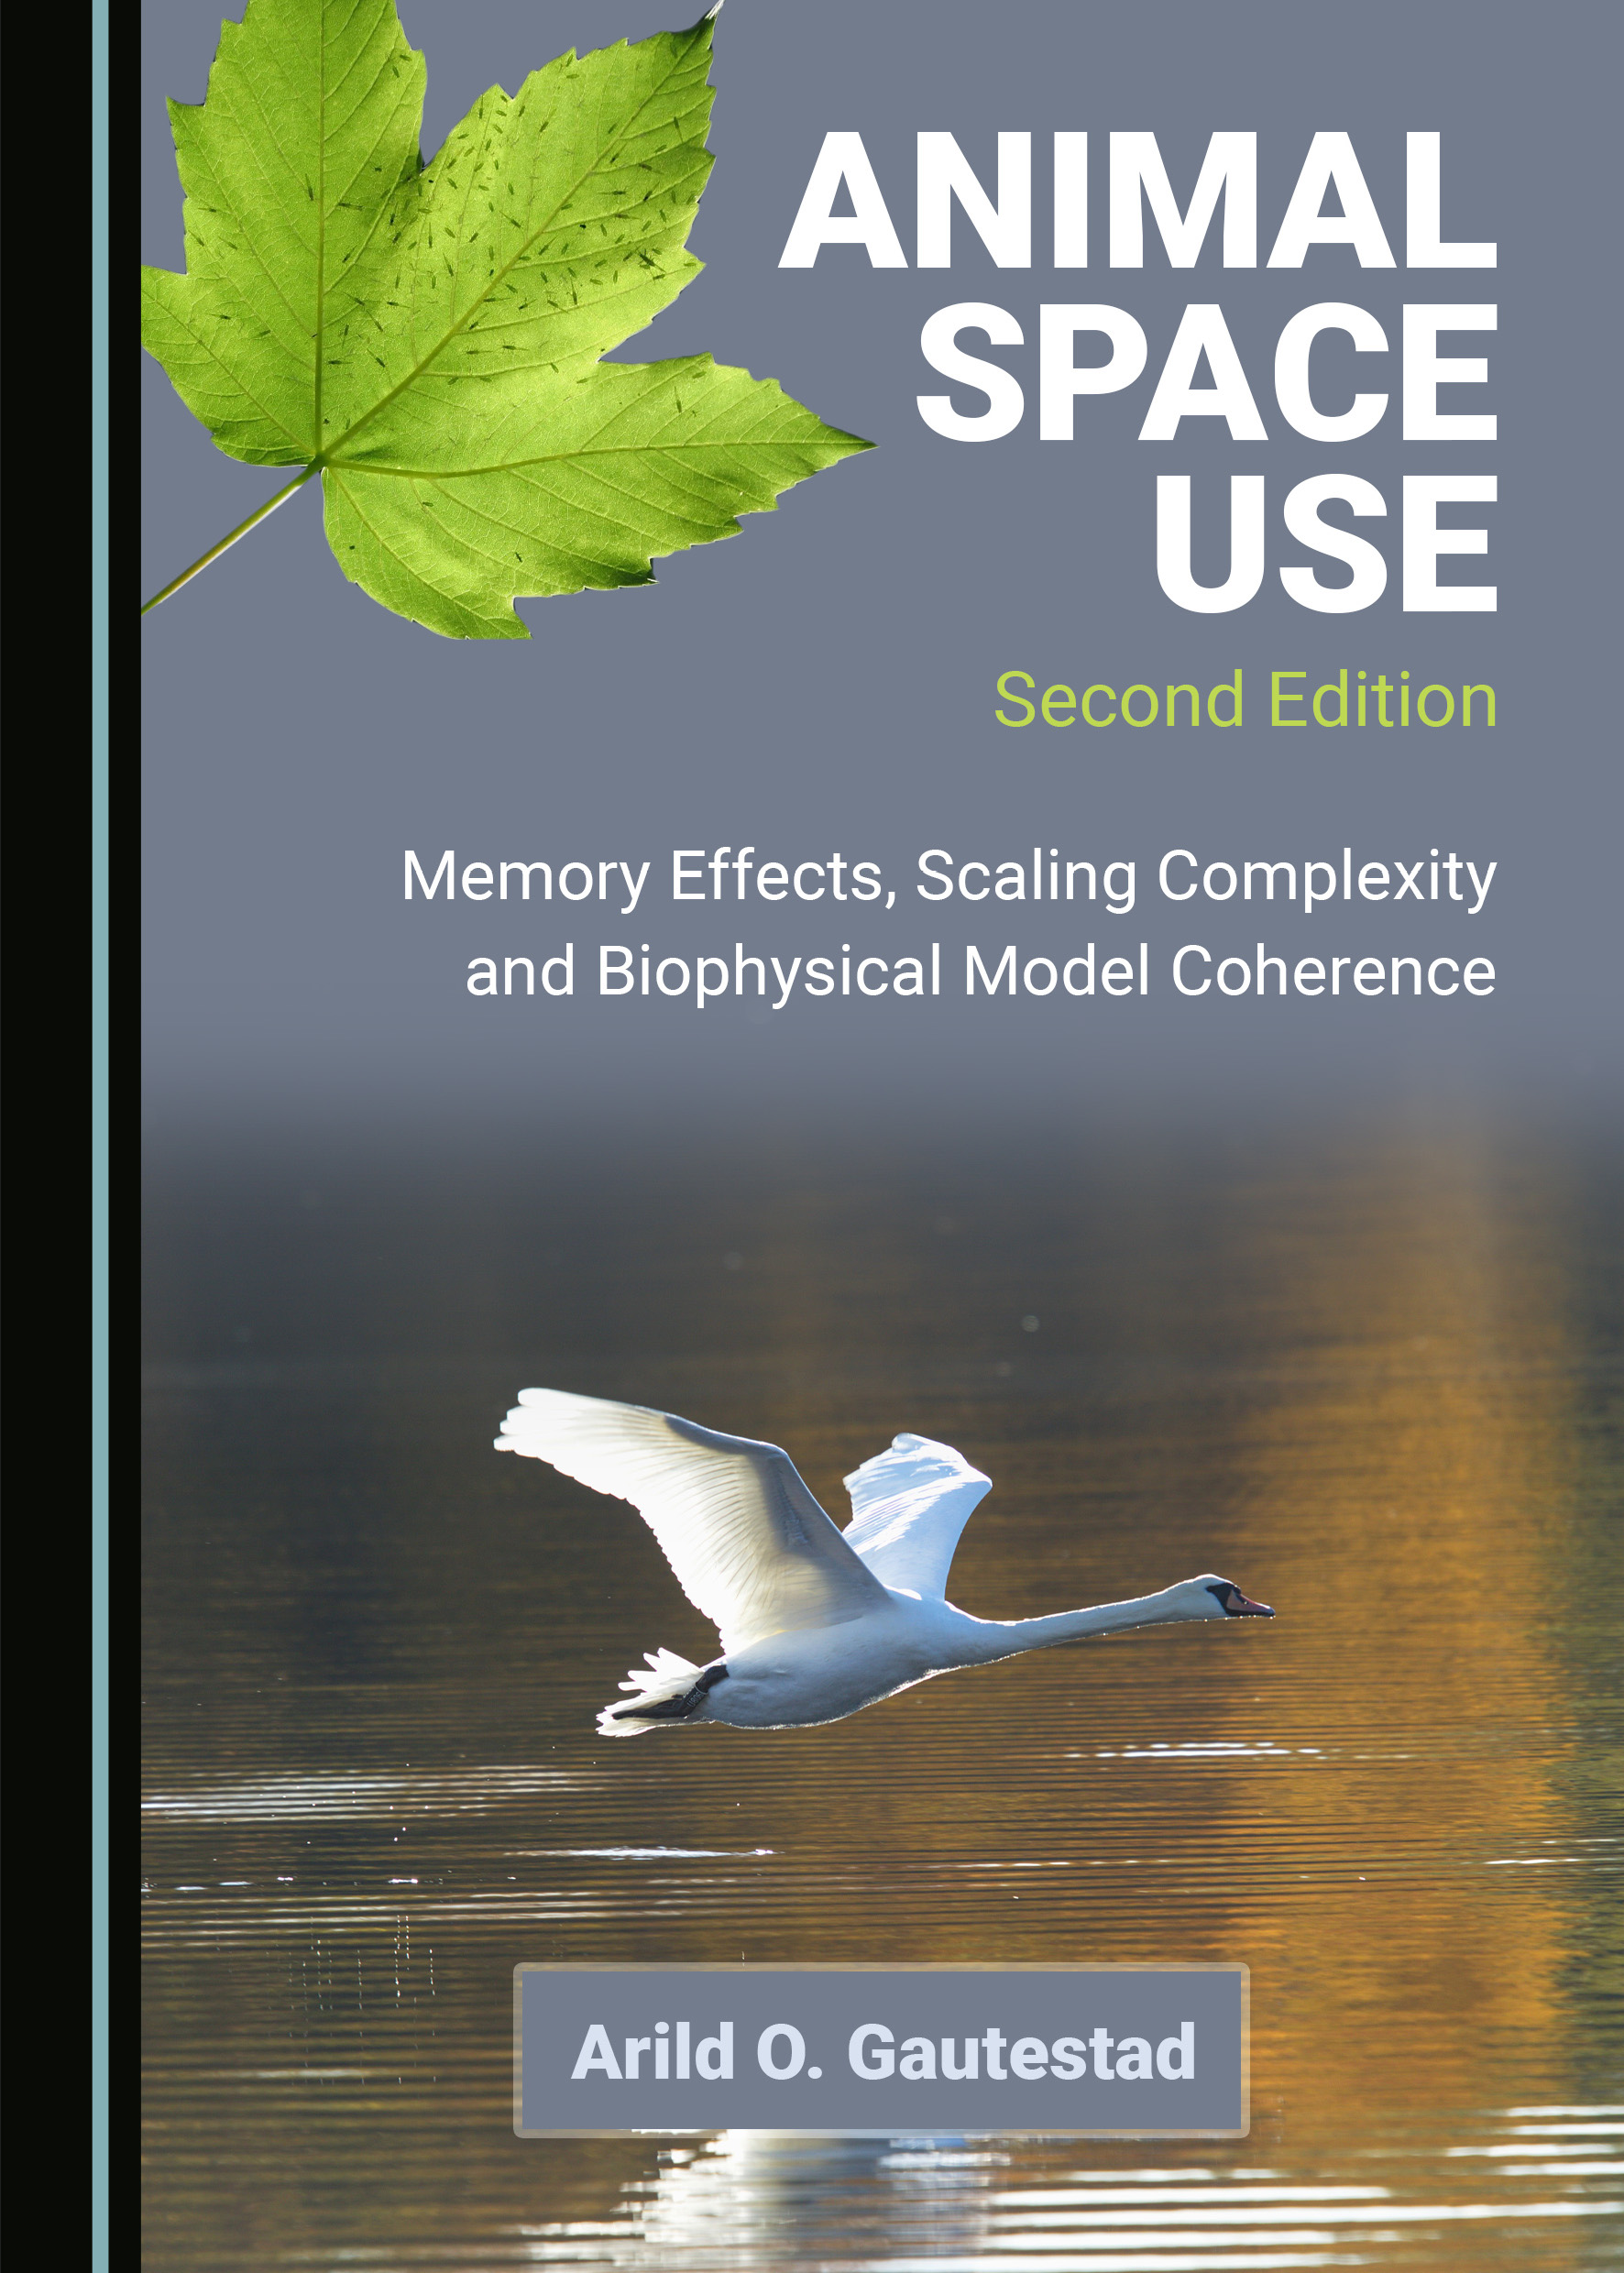 Animal Space Use, Second Edition: Memory Effects, Scaling Complexity and Biophysical Model Coherence